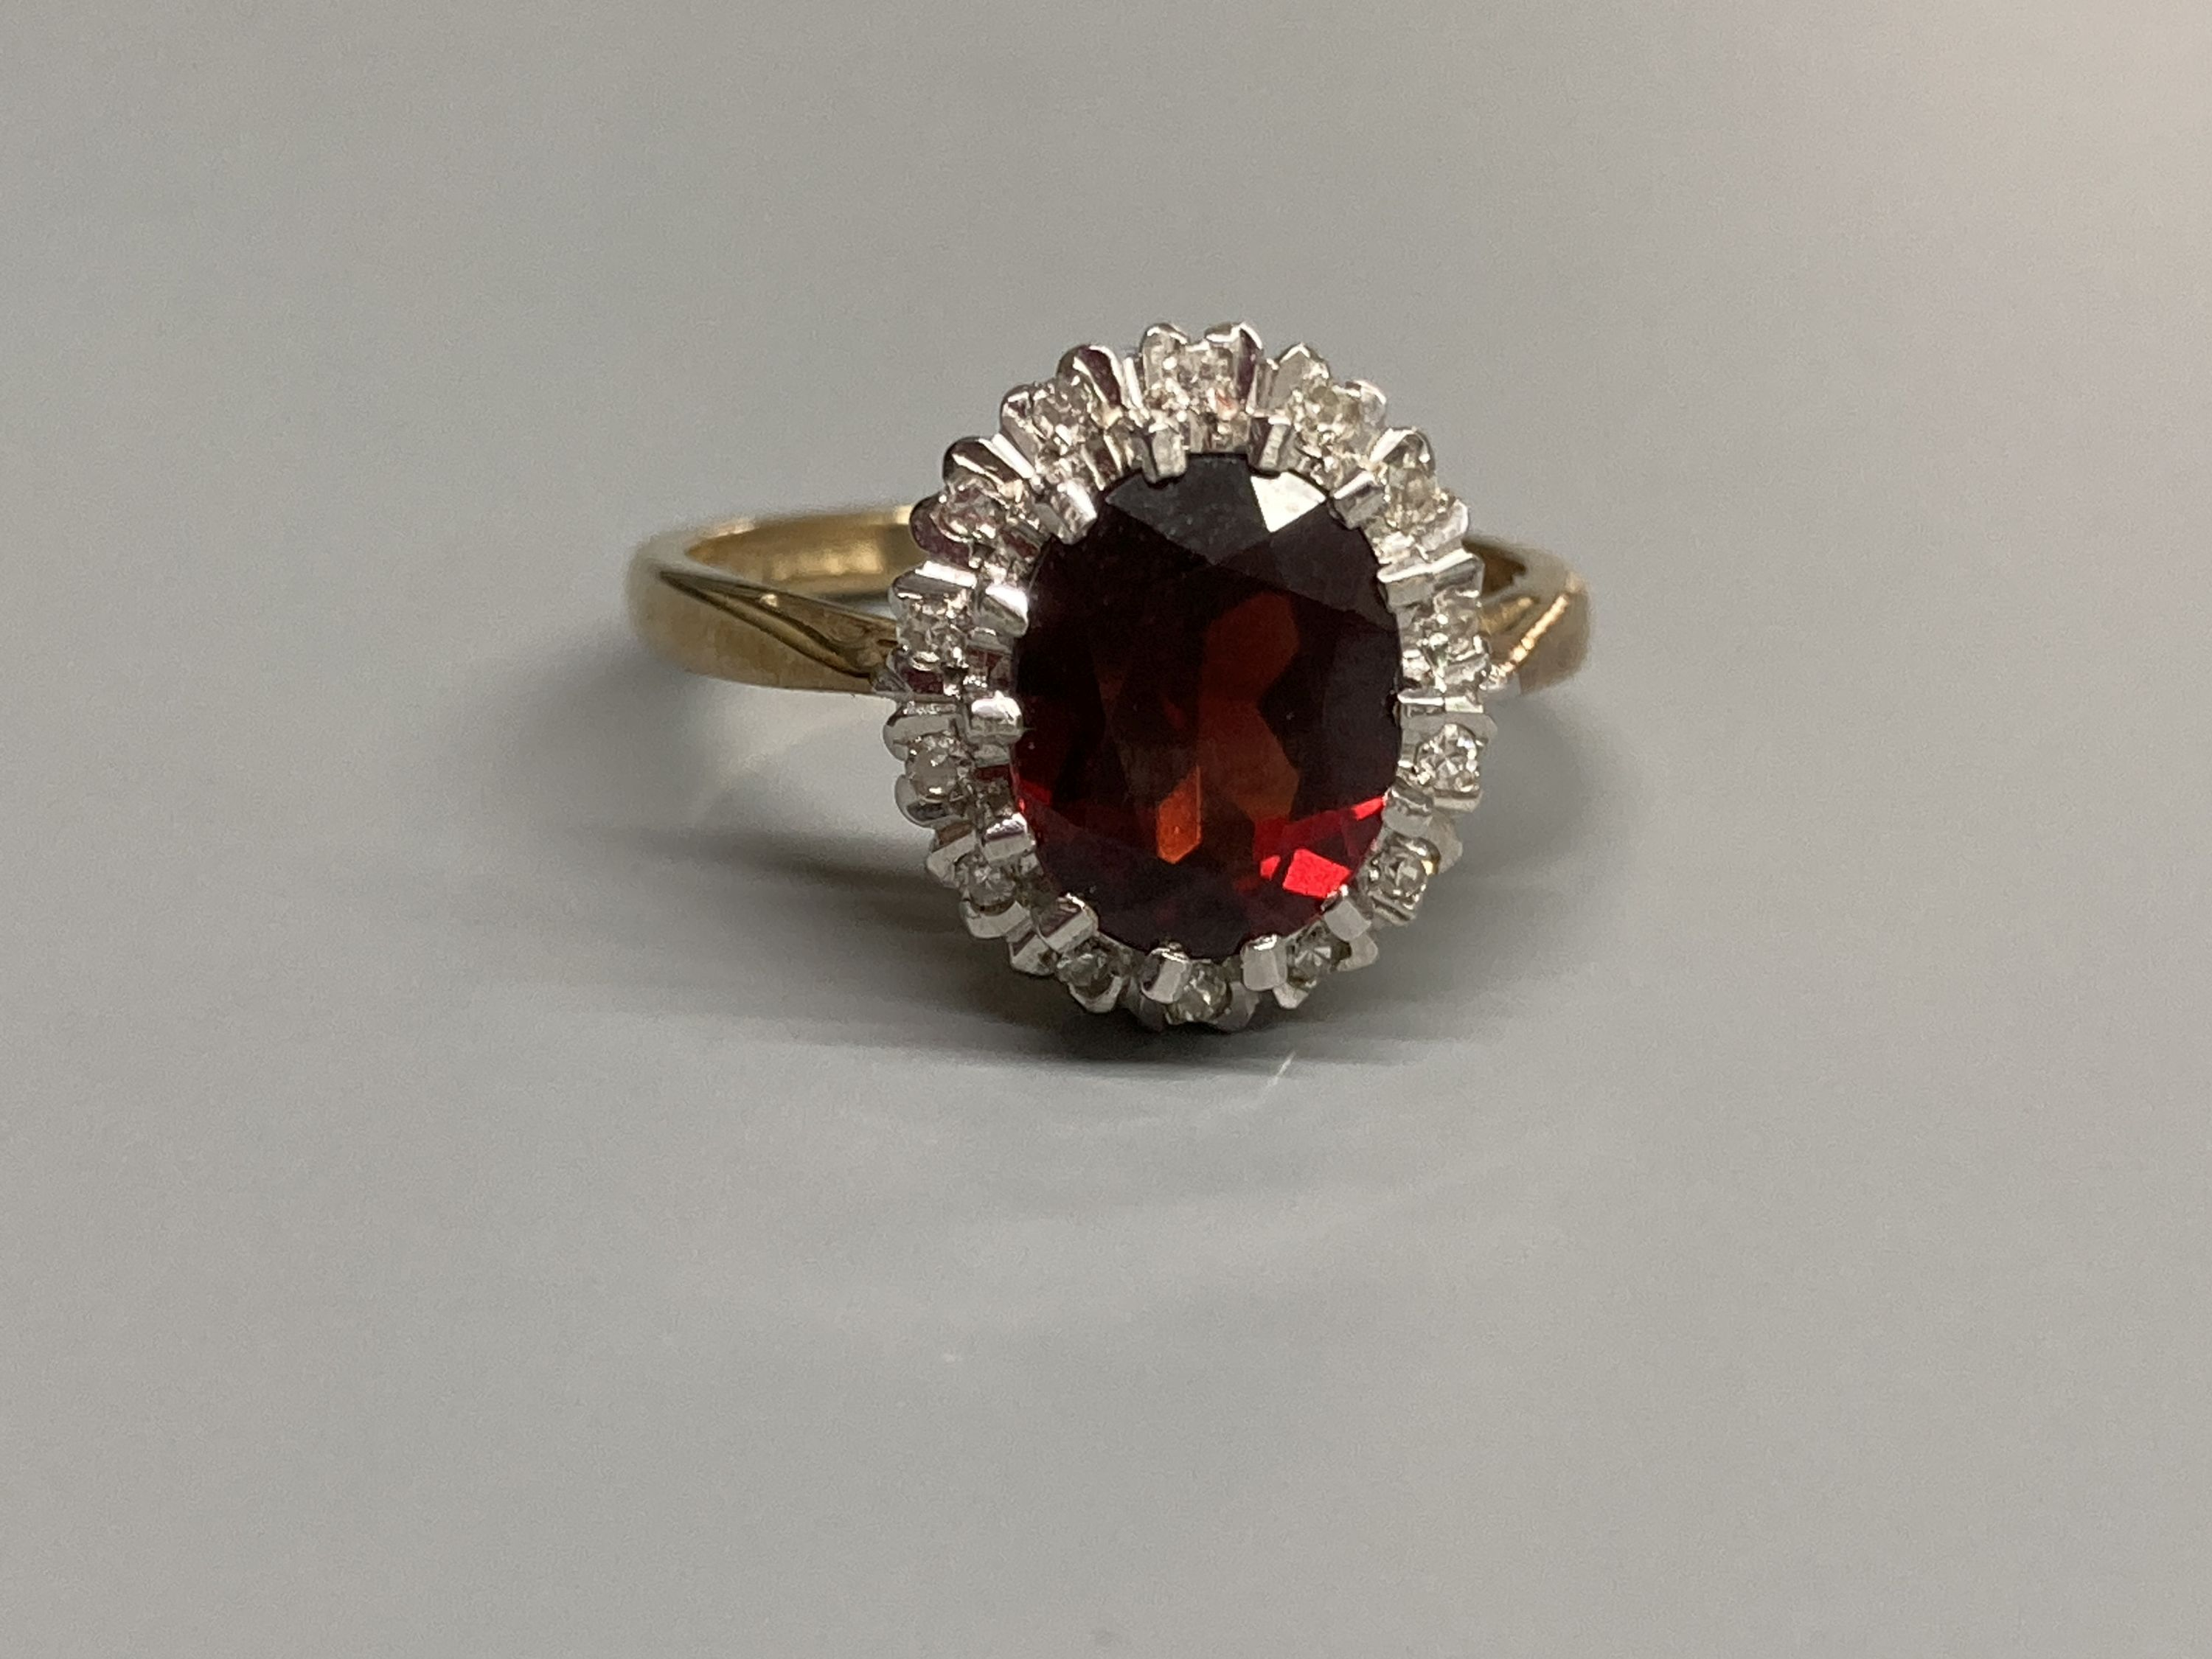 A modern 9ct gold, garnet and diamond set oval cluster ring, size N, gross 3.4 grams. - Image 2 of 3